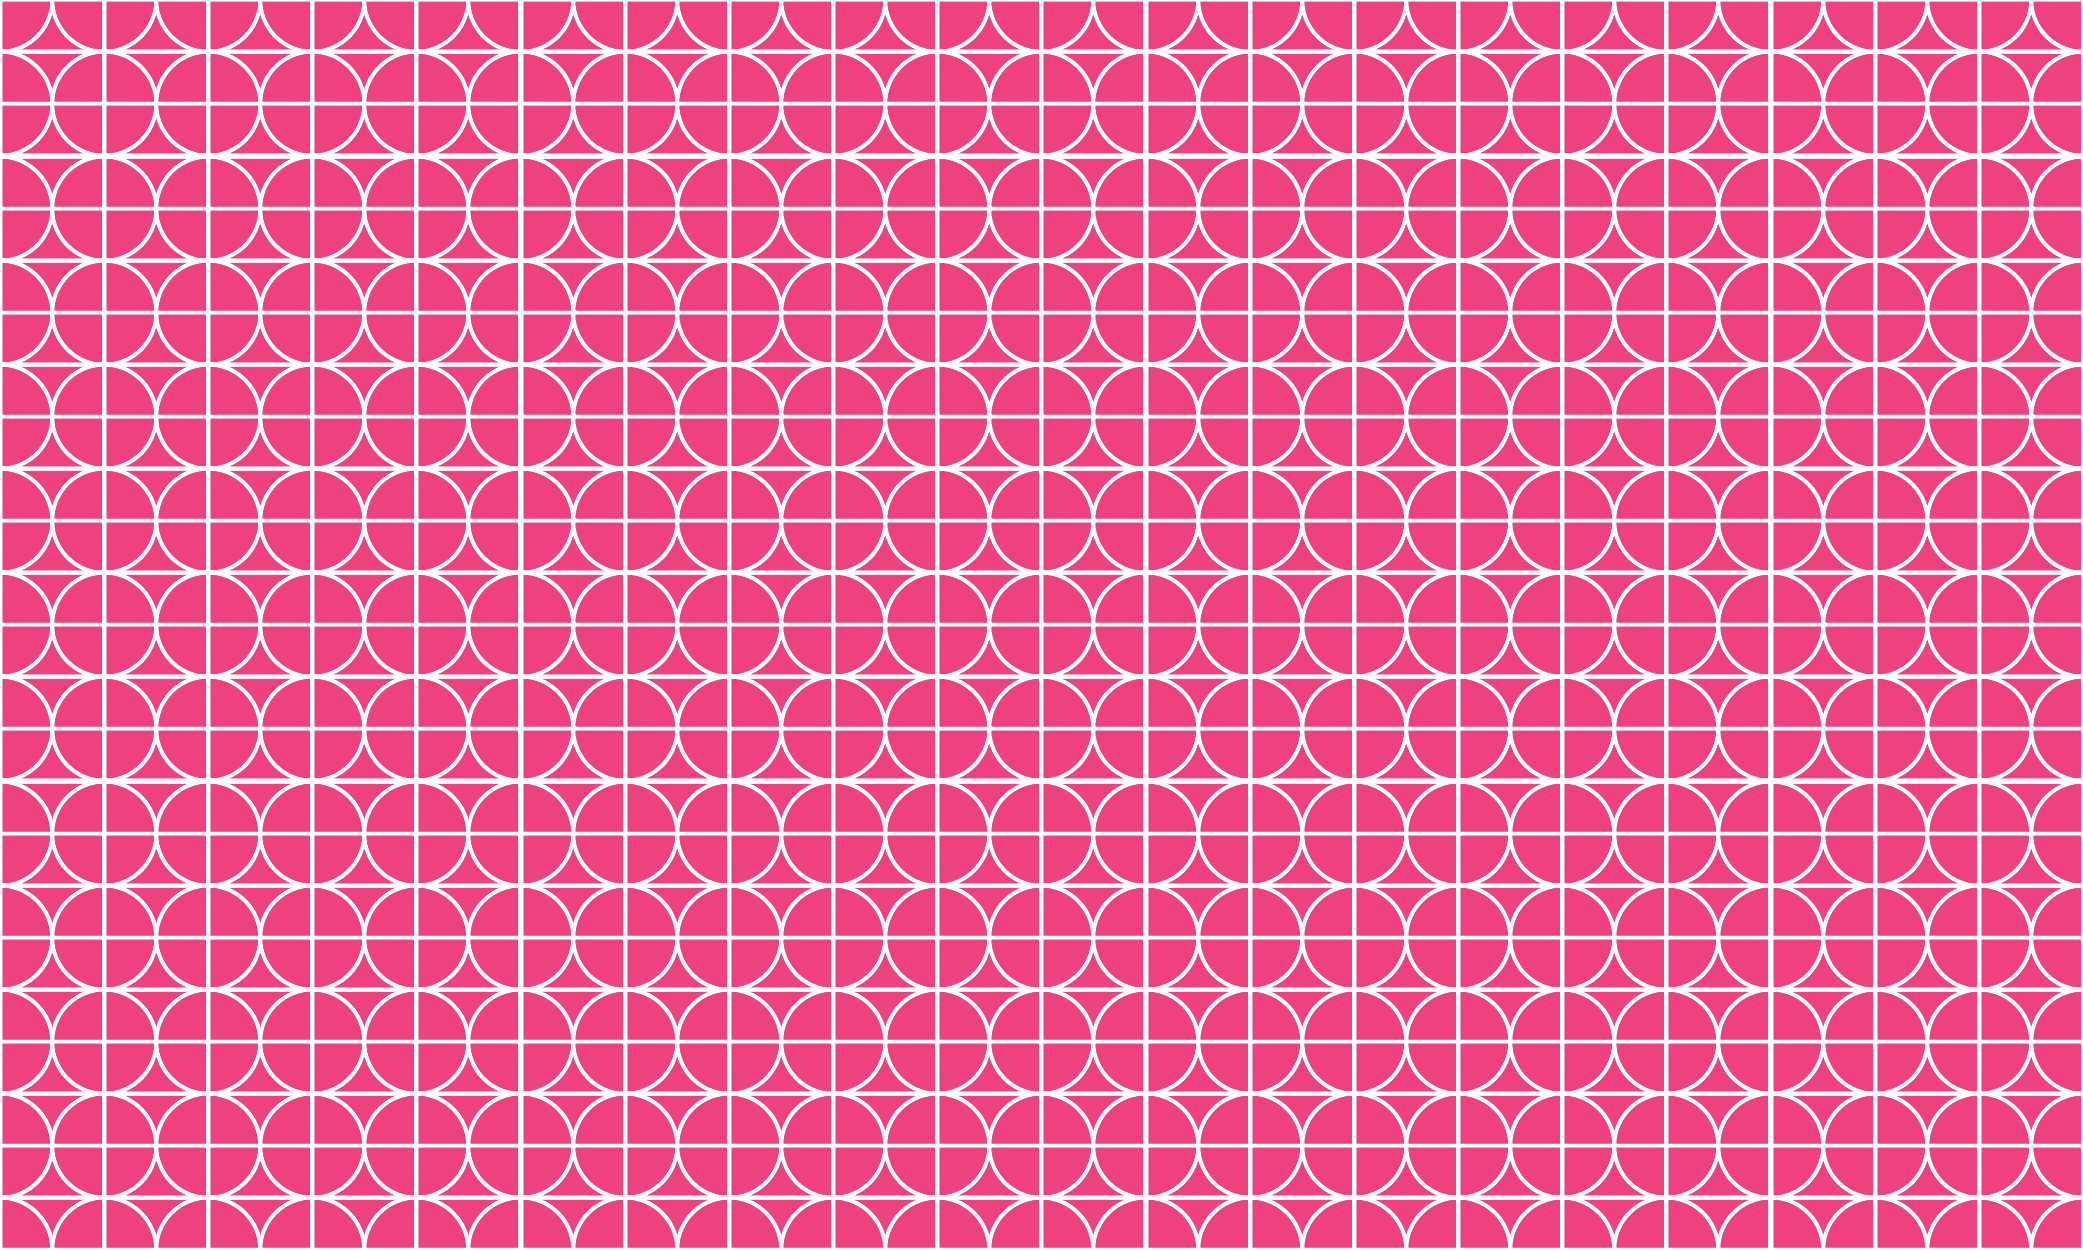 Creative Estuary brand architectural pattern 7